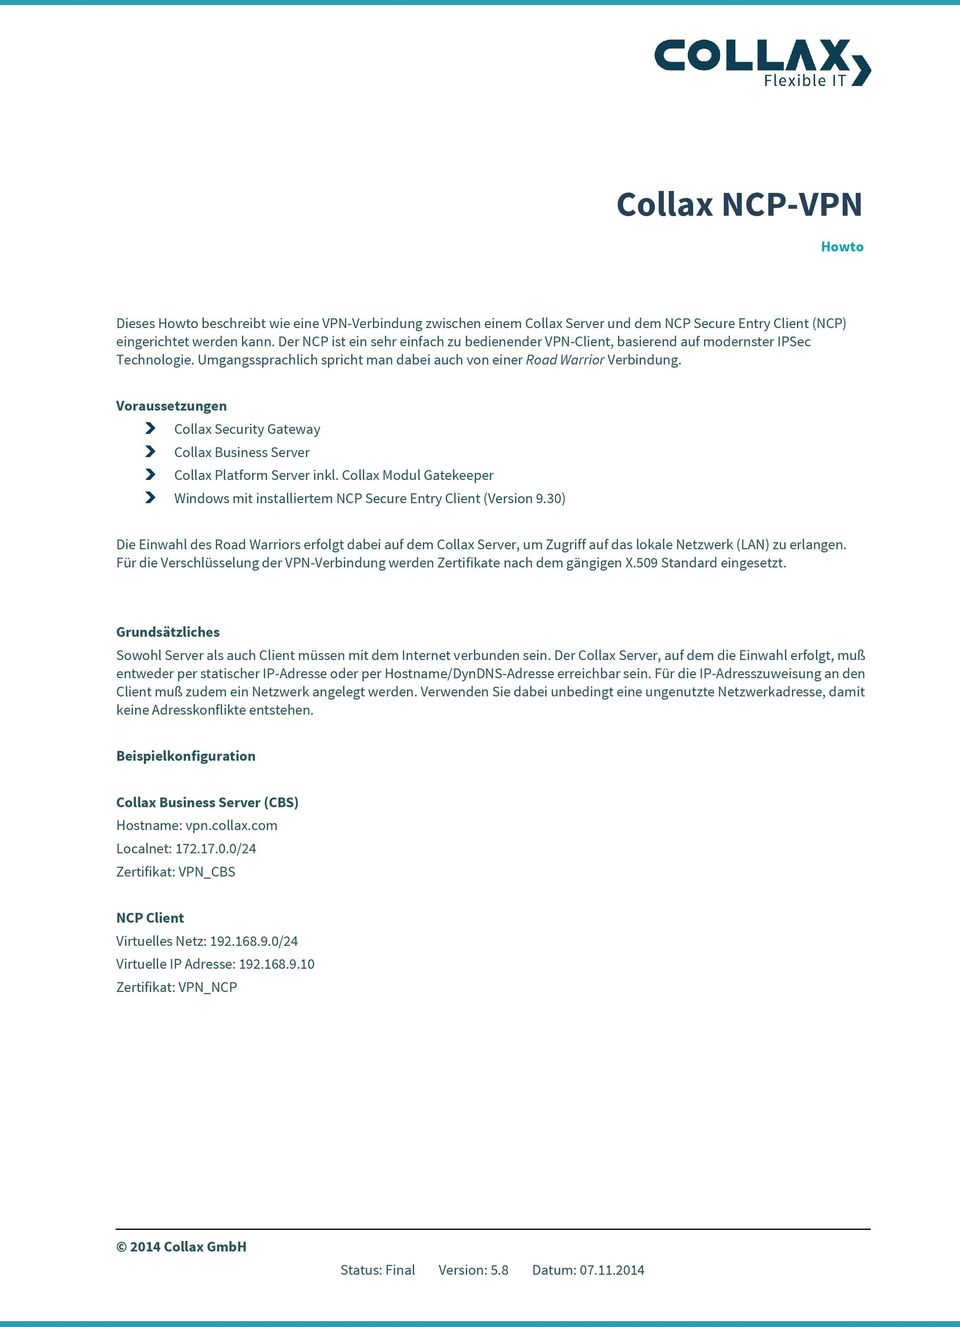 Voraussetzungen Collax Security Gateway Collax Business Server Collax Platform Server inkl. Collax Modul Gatekeeper Windows mit installiertem NCP Secure Entry Client (Version 9.